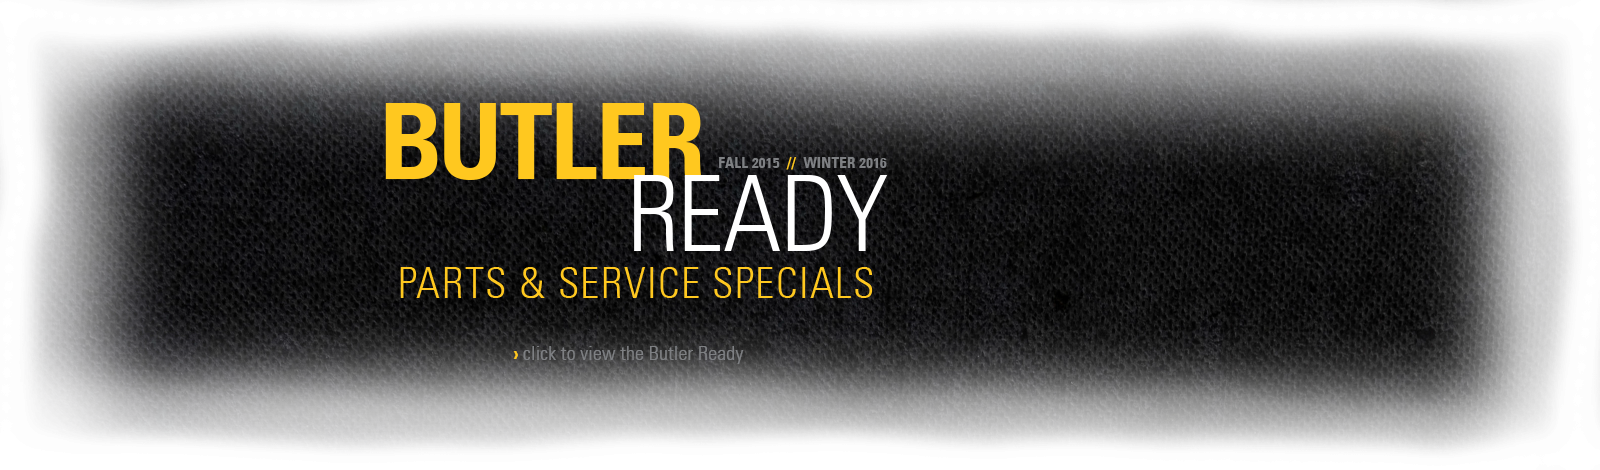 Butler Ready - Parts and Service Specials